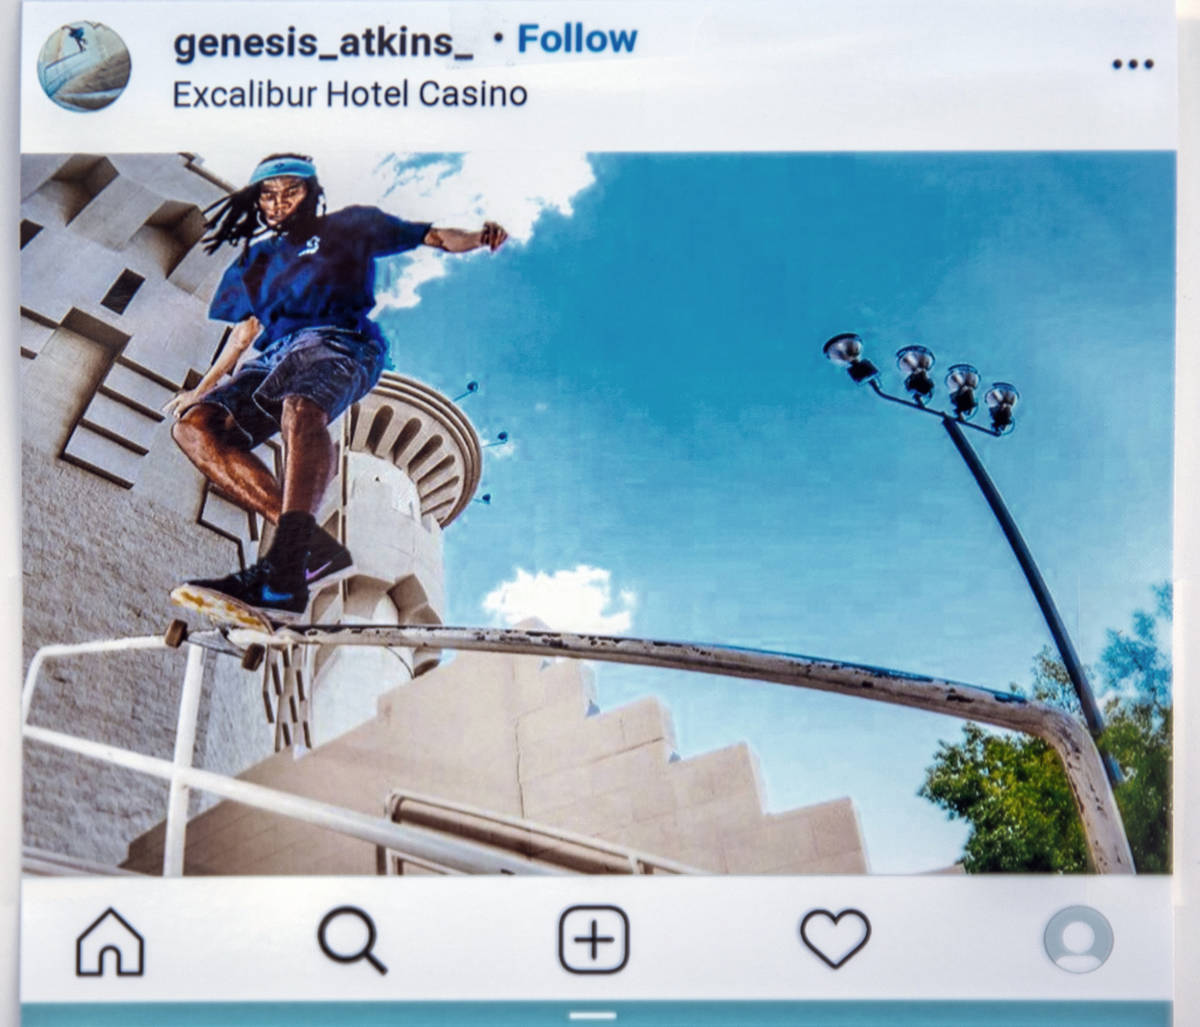 Instagram page image of Genesis Atkins, a motorcyclist who was killed Sunday evening when struc ...